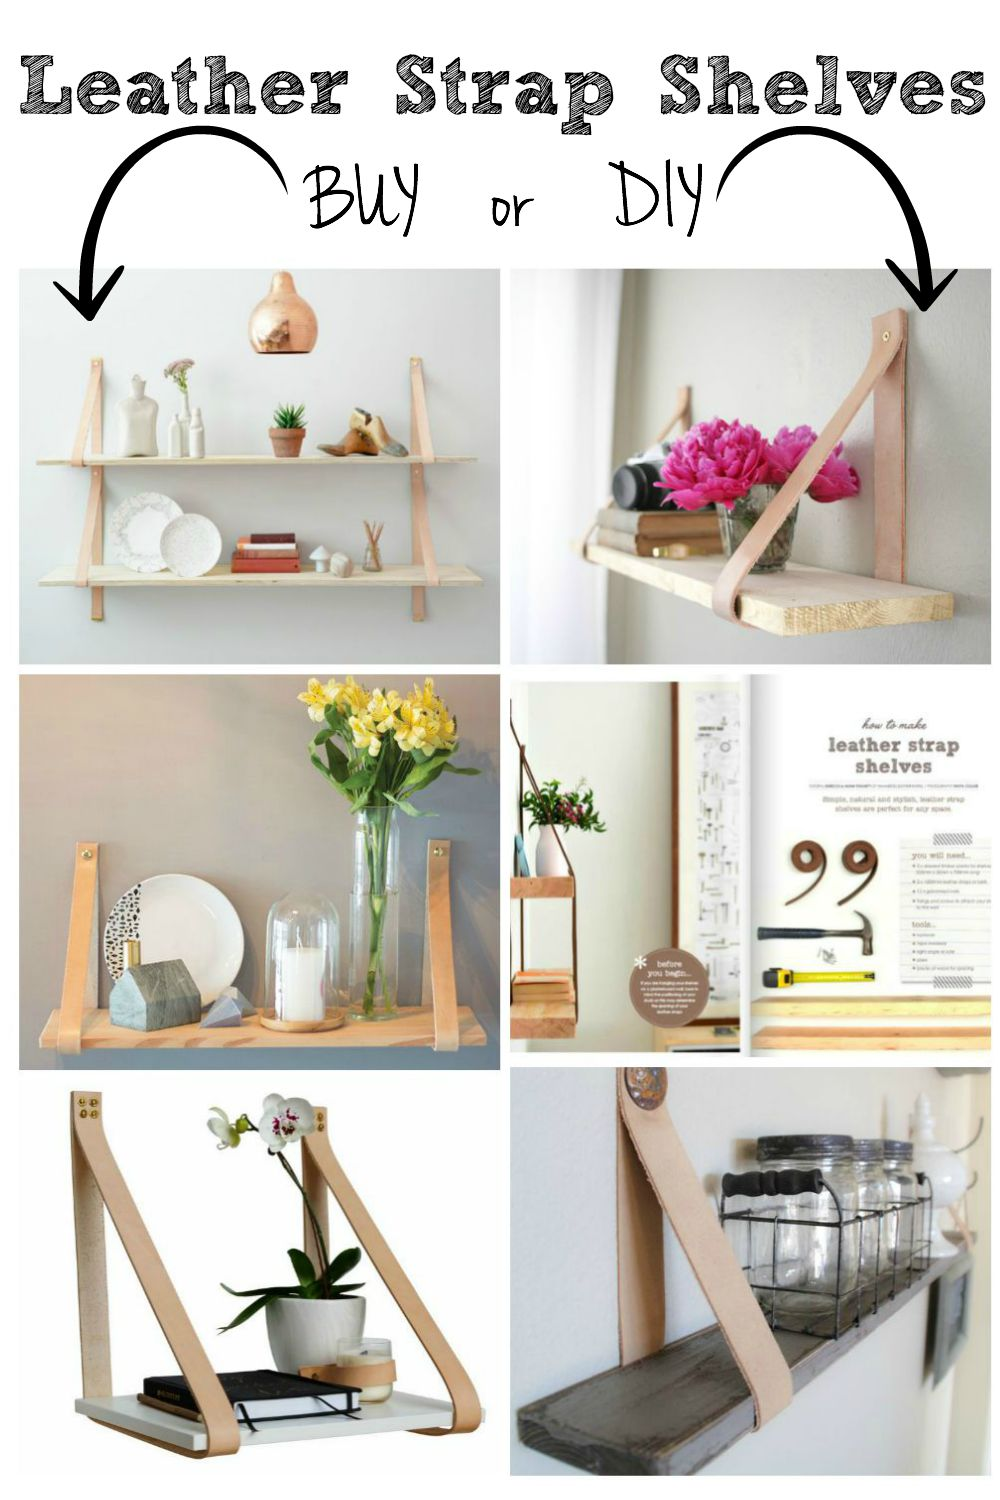 Buy or DIY Leather Strap Shelves